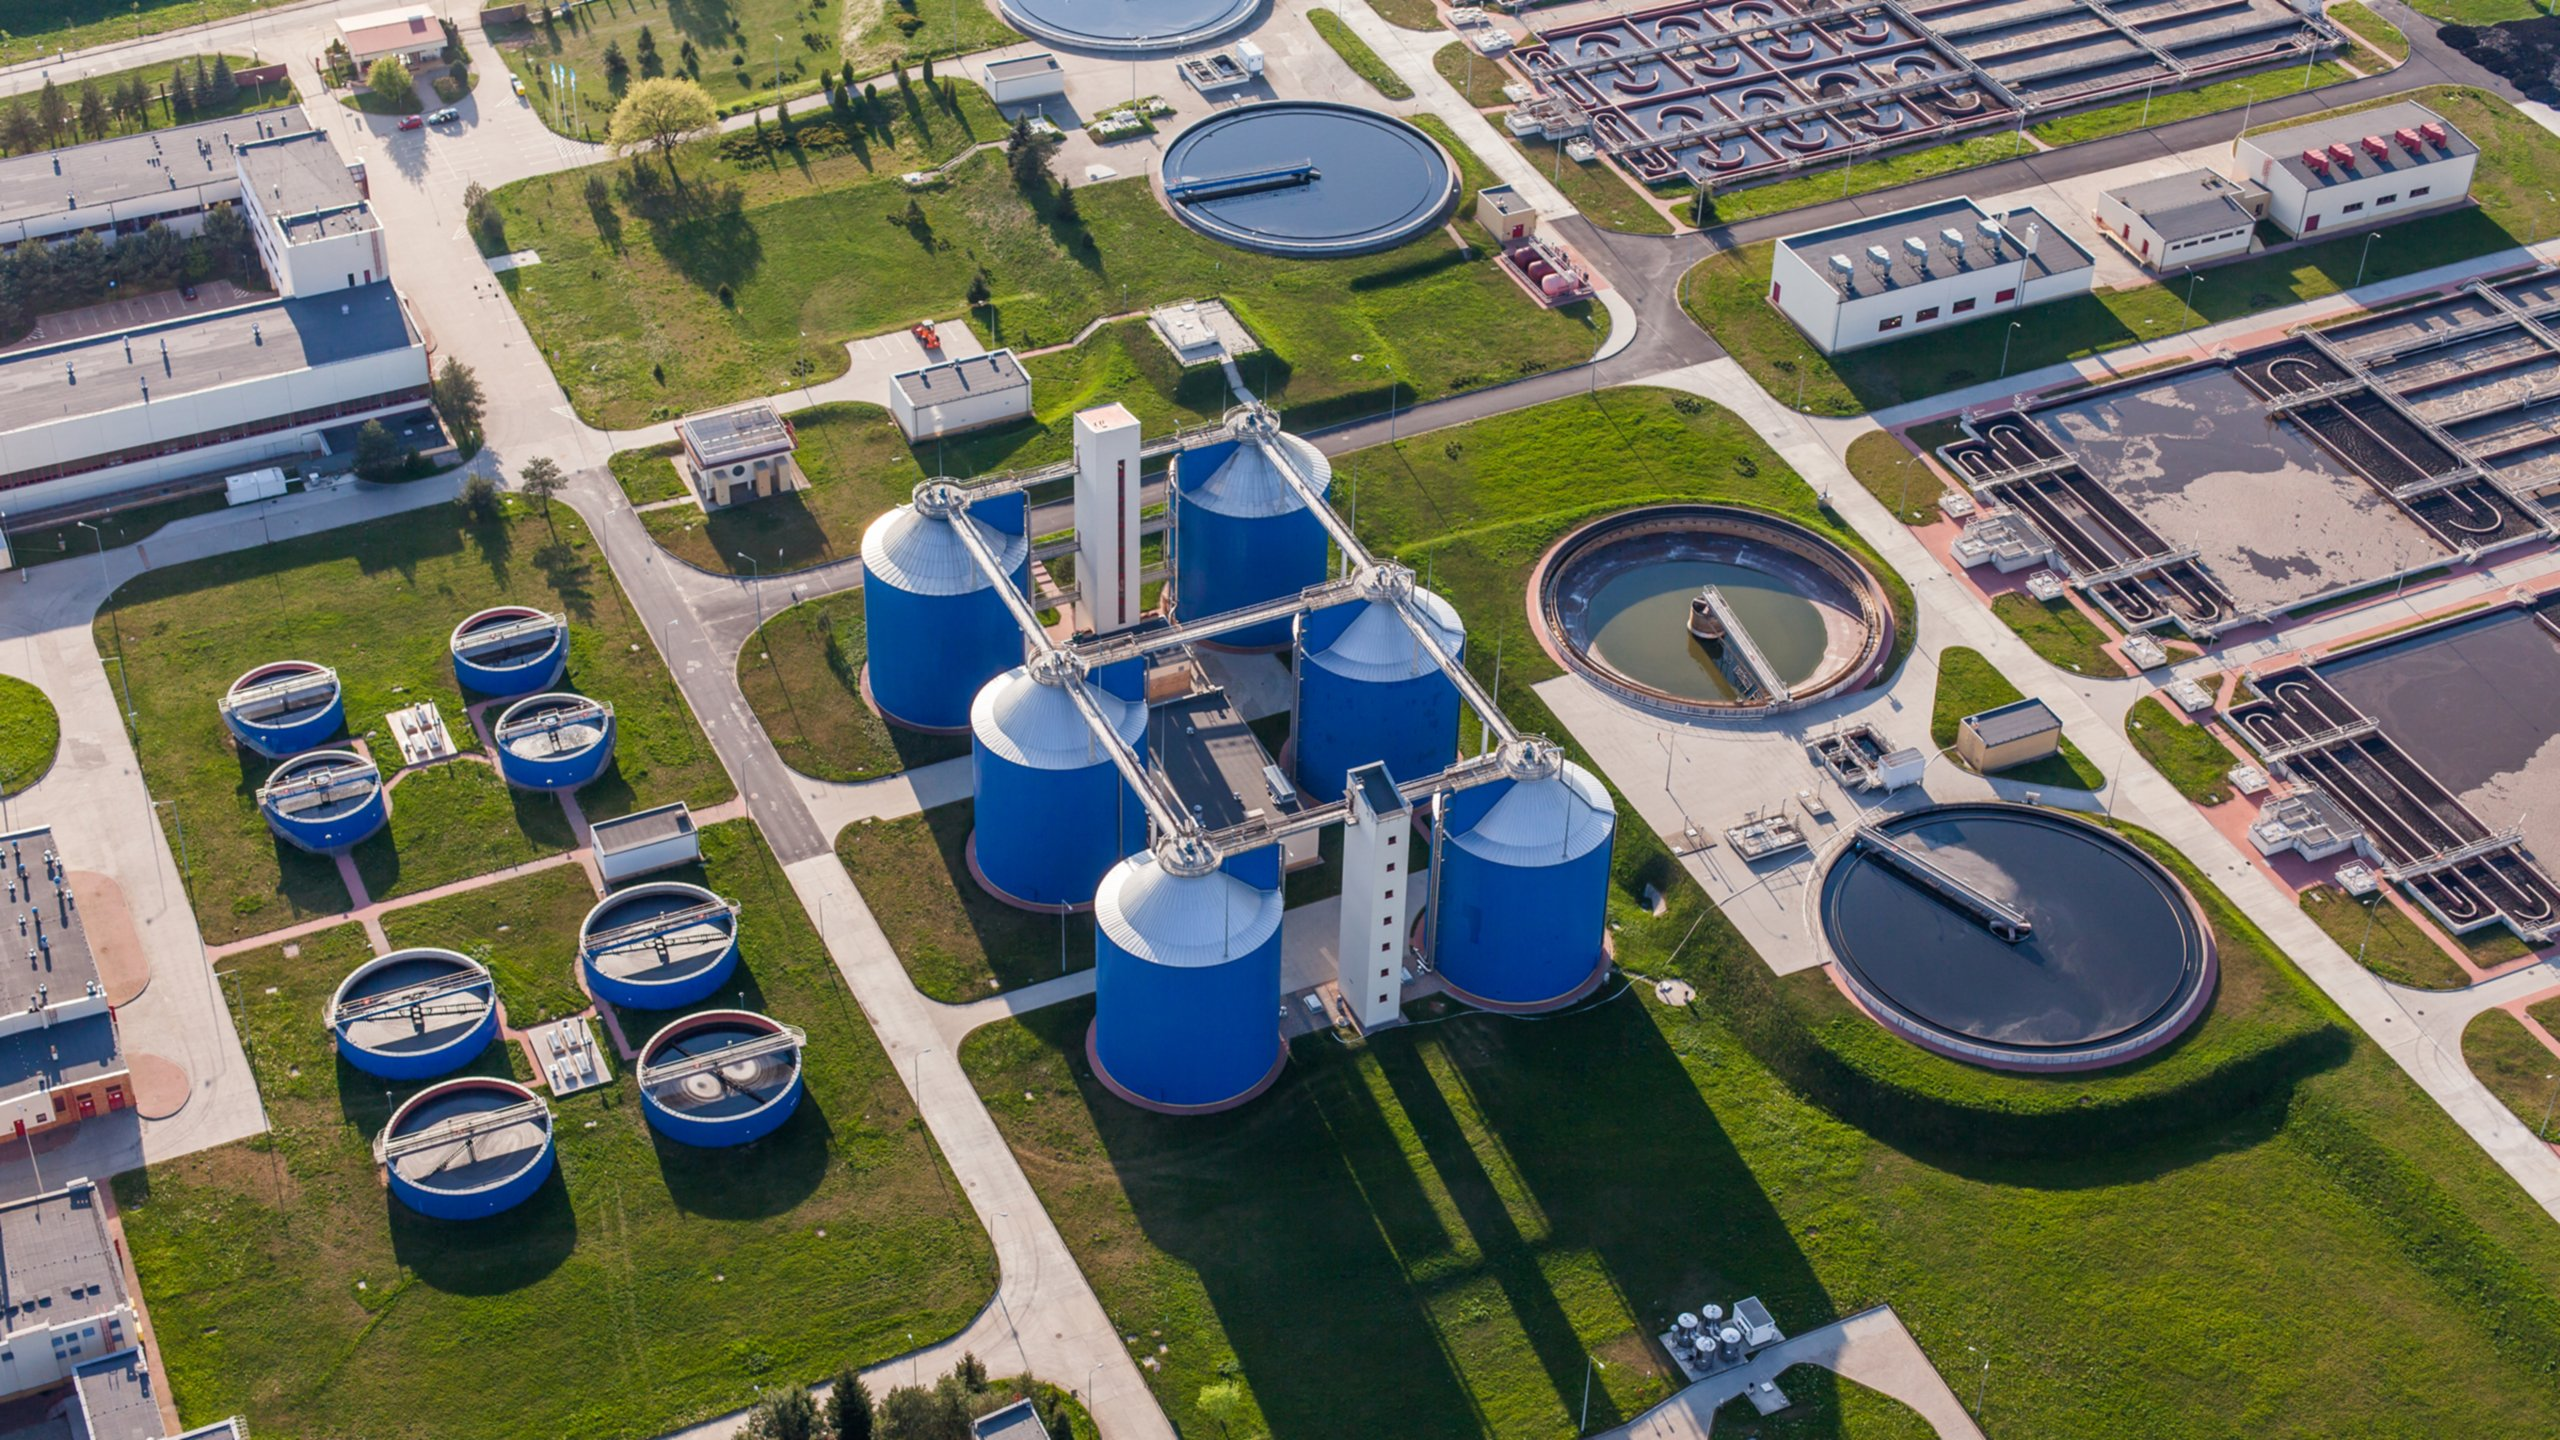 Aerial view of water wastewater plant